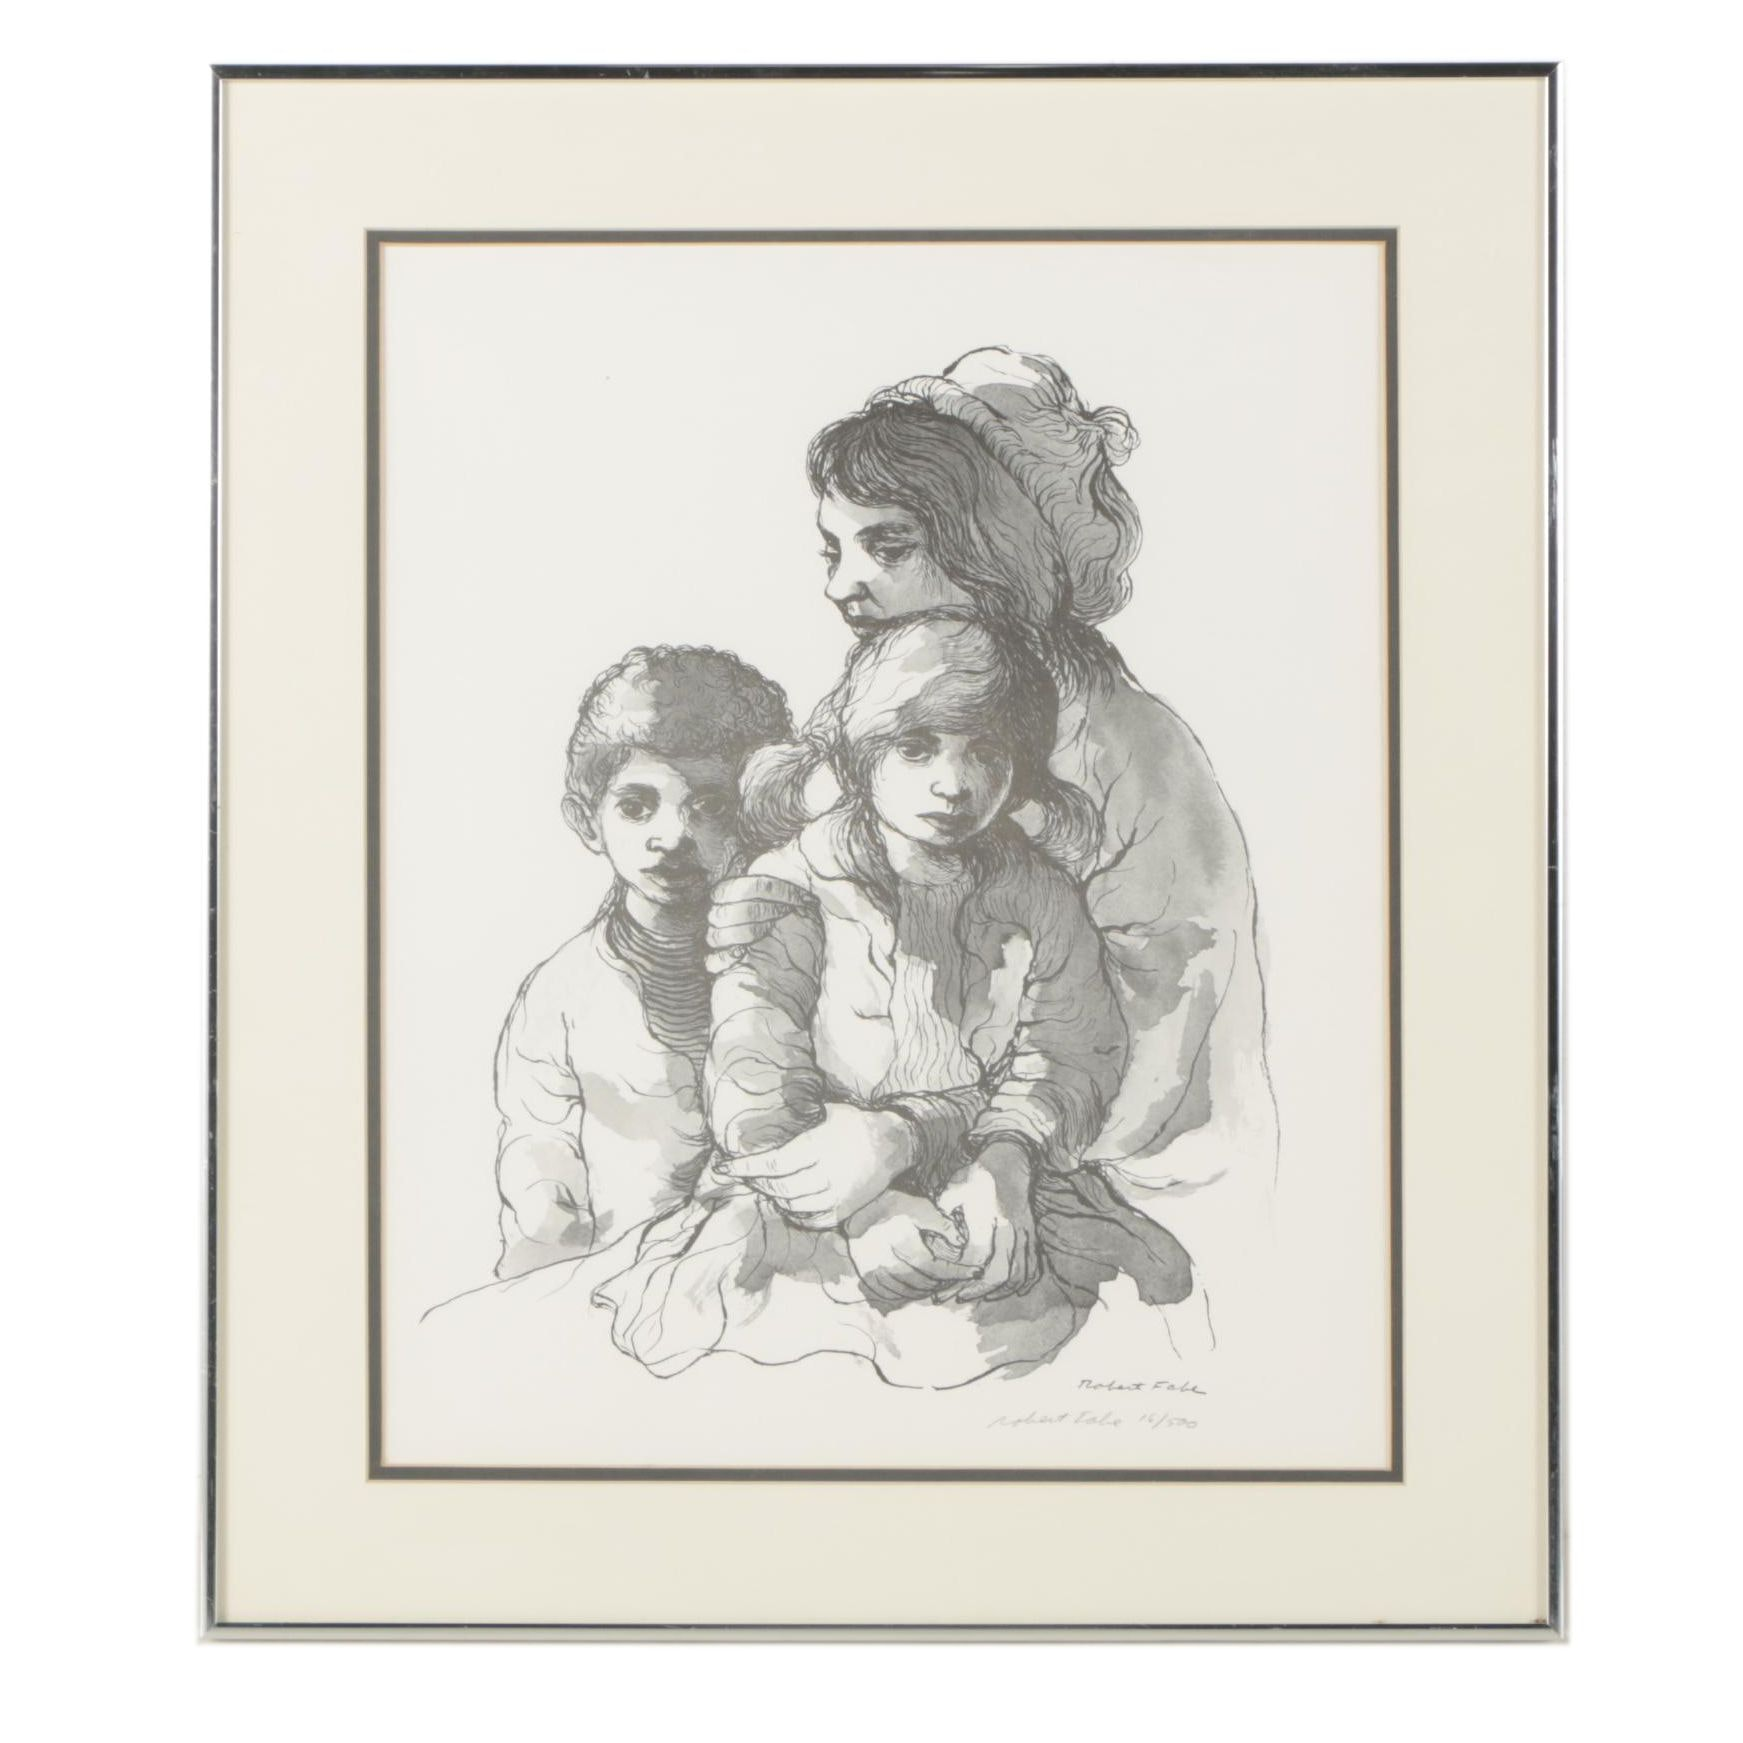 Robert Fabe Limited Edition Halftone Print of Family